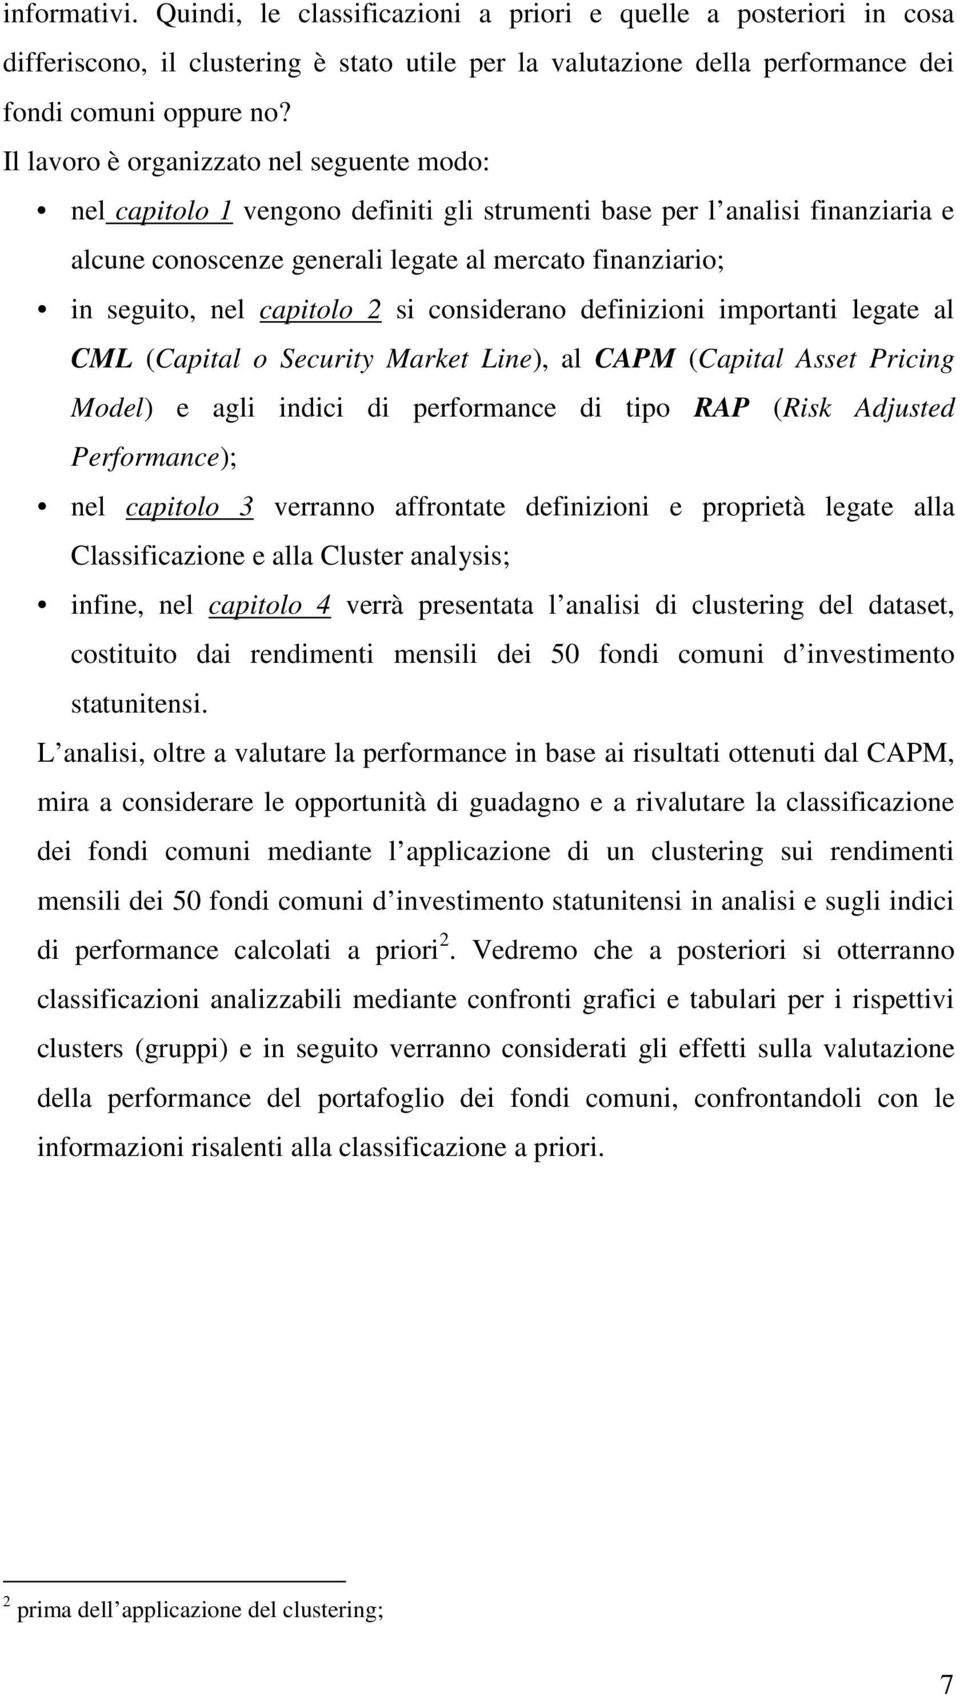 caitolo 2 si considerano definizioni imortanti legate al CML (Caital o Security Market Line), al CAPM (Caital Asset Pricing Model) e agli indici di erformance di tio RAP (Risk Adjusted Performance);